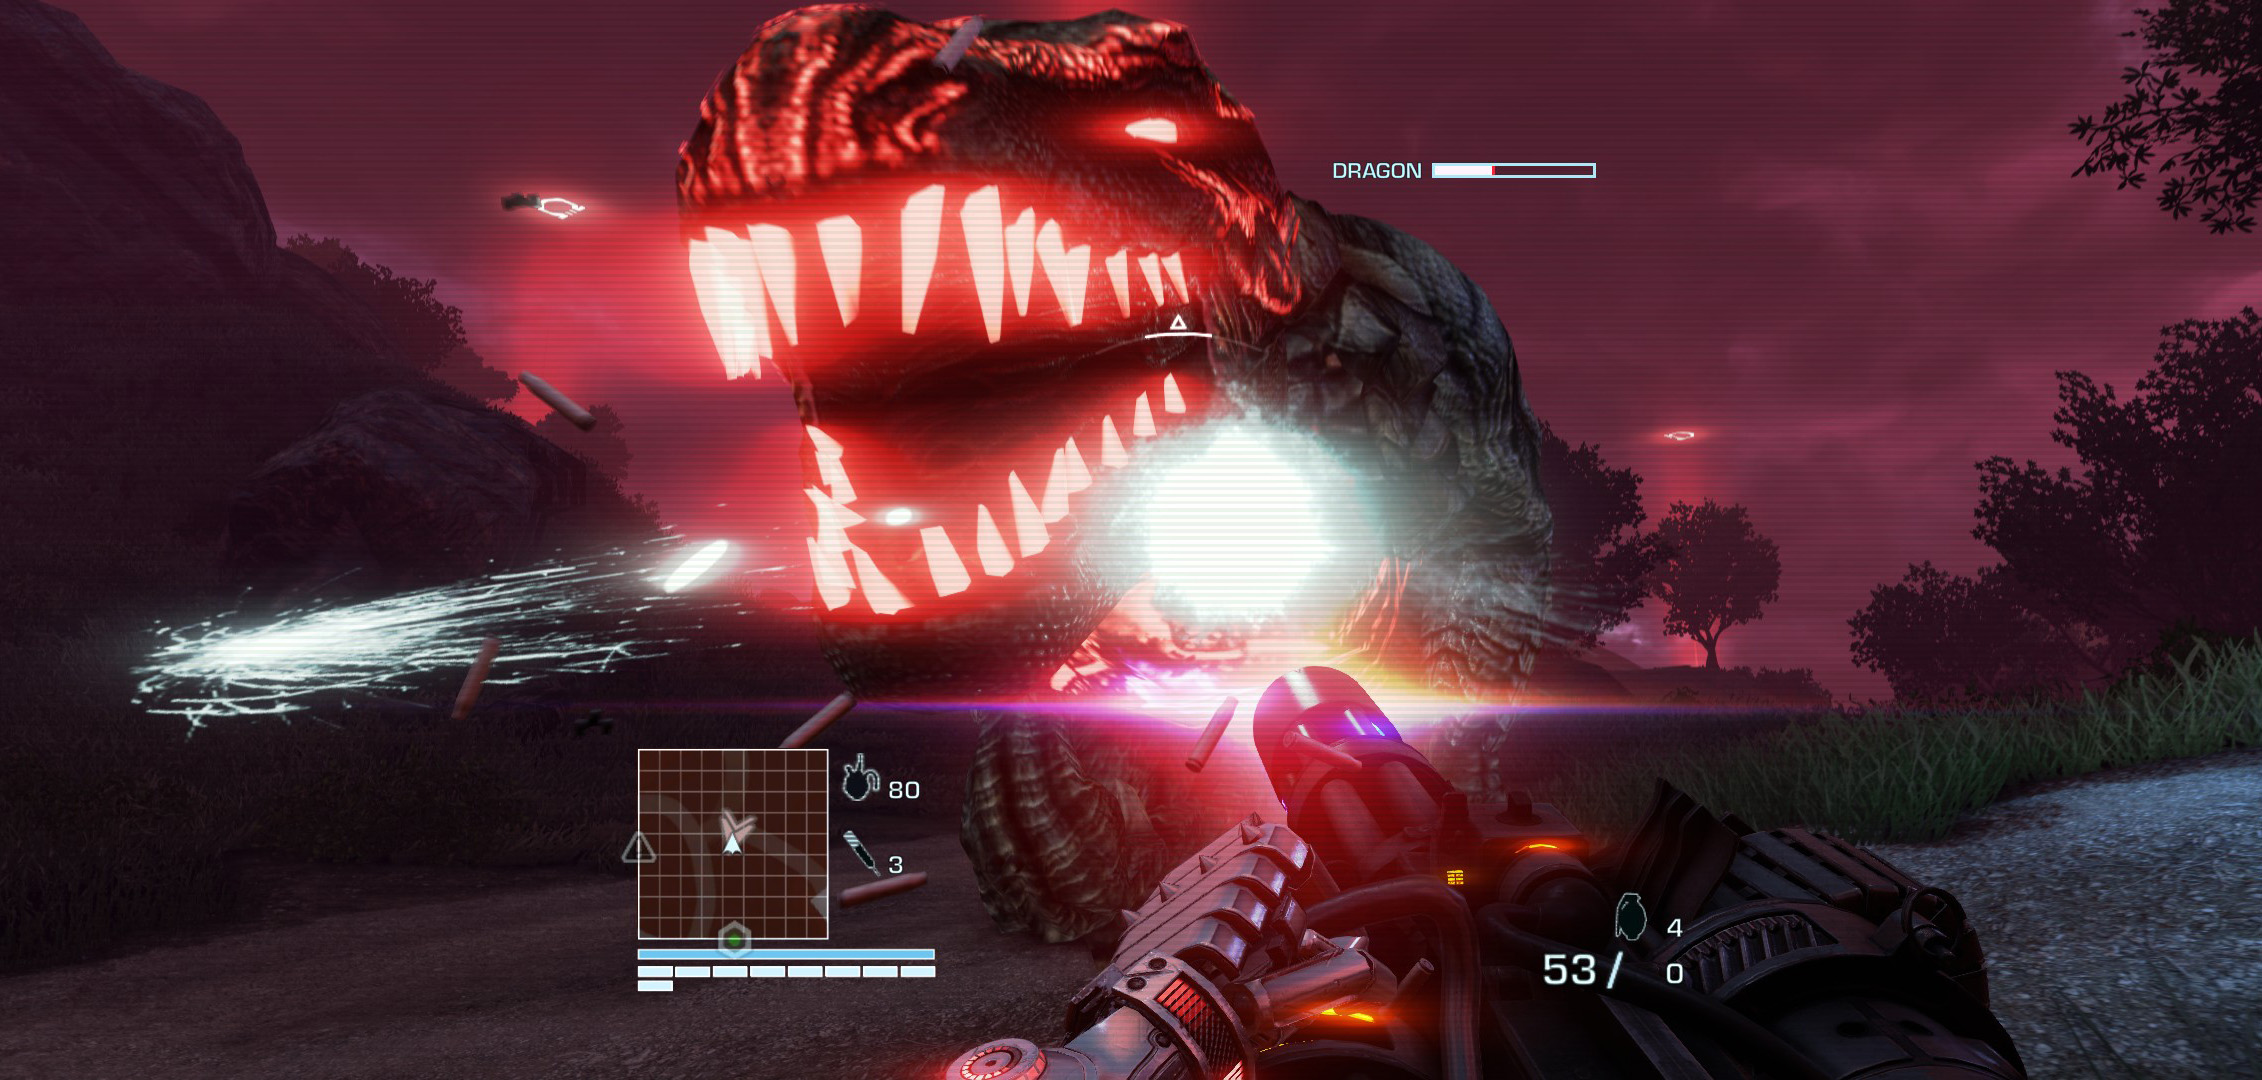 Photo of Let's get the game Far Cry 3: Blood Dragon for free